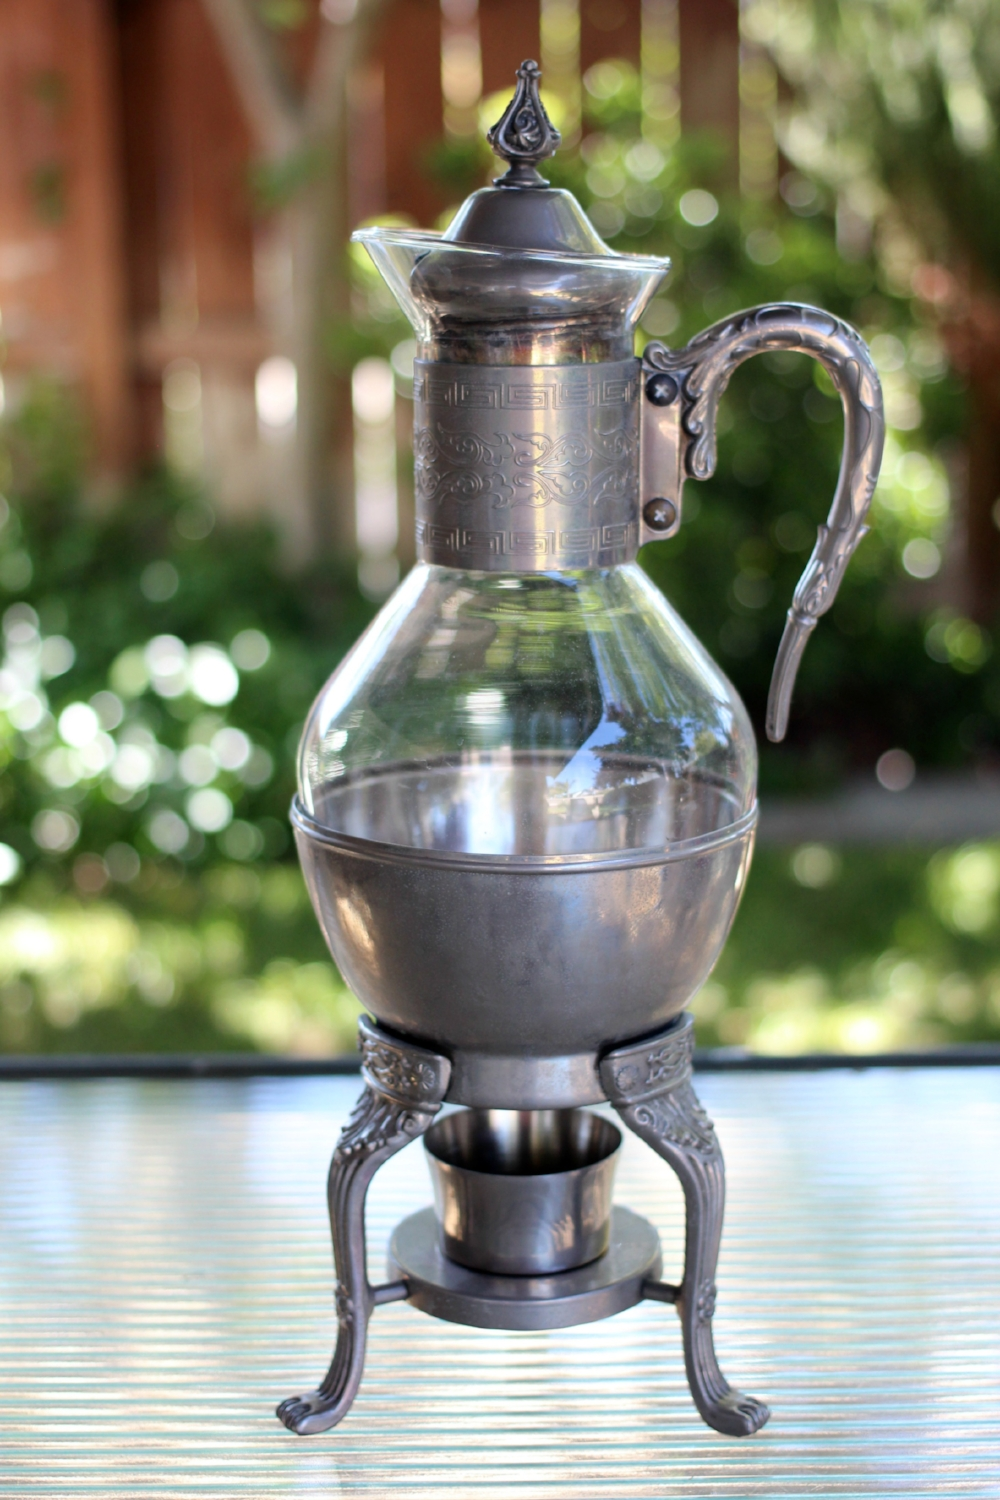 SILVER & GLASS COFFEE SERVER - $15 Available with delivered orders only